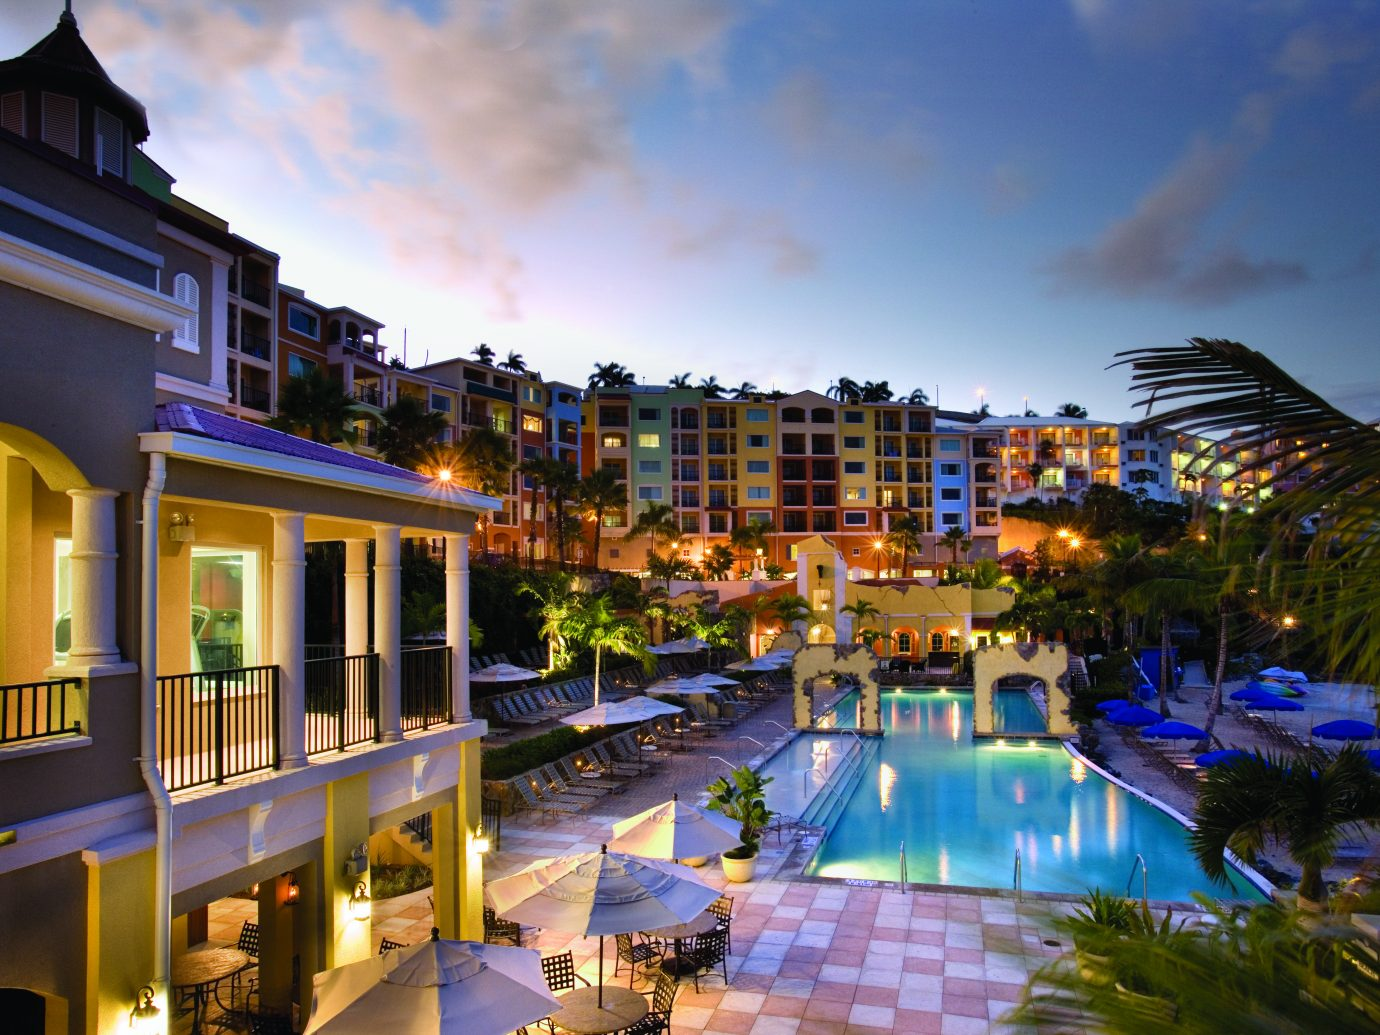 dusk view of colorful resort on water with pool